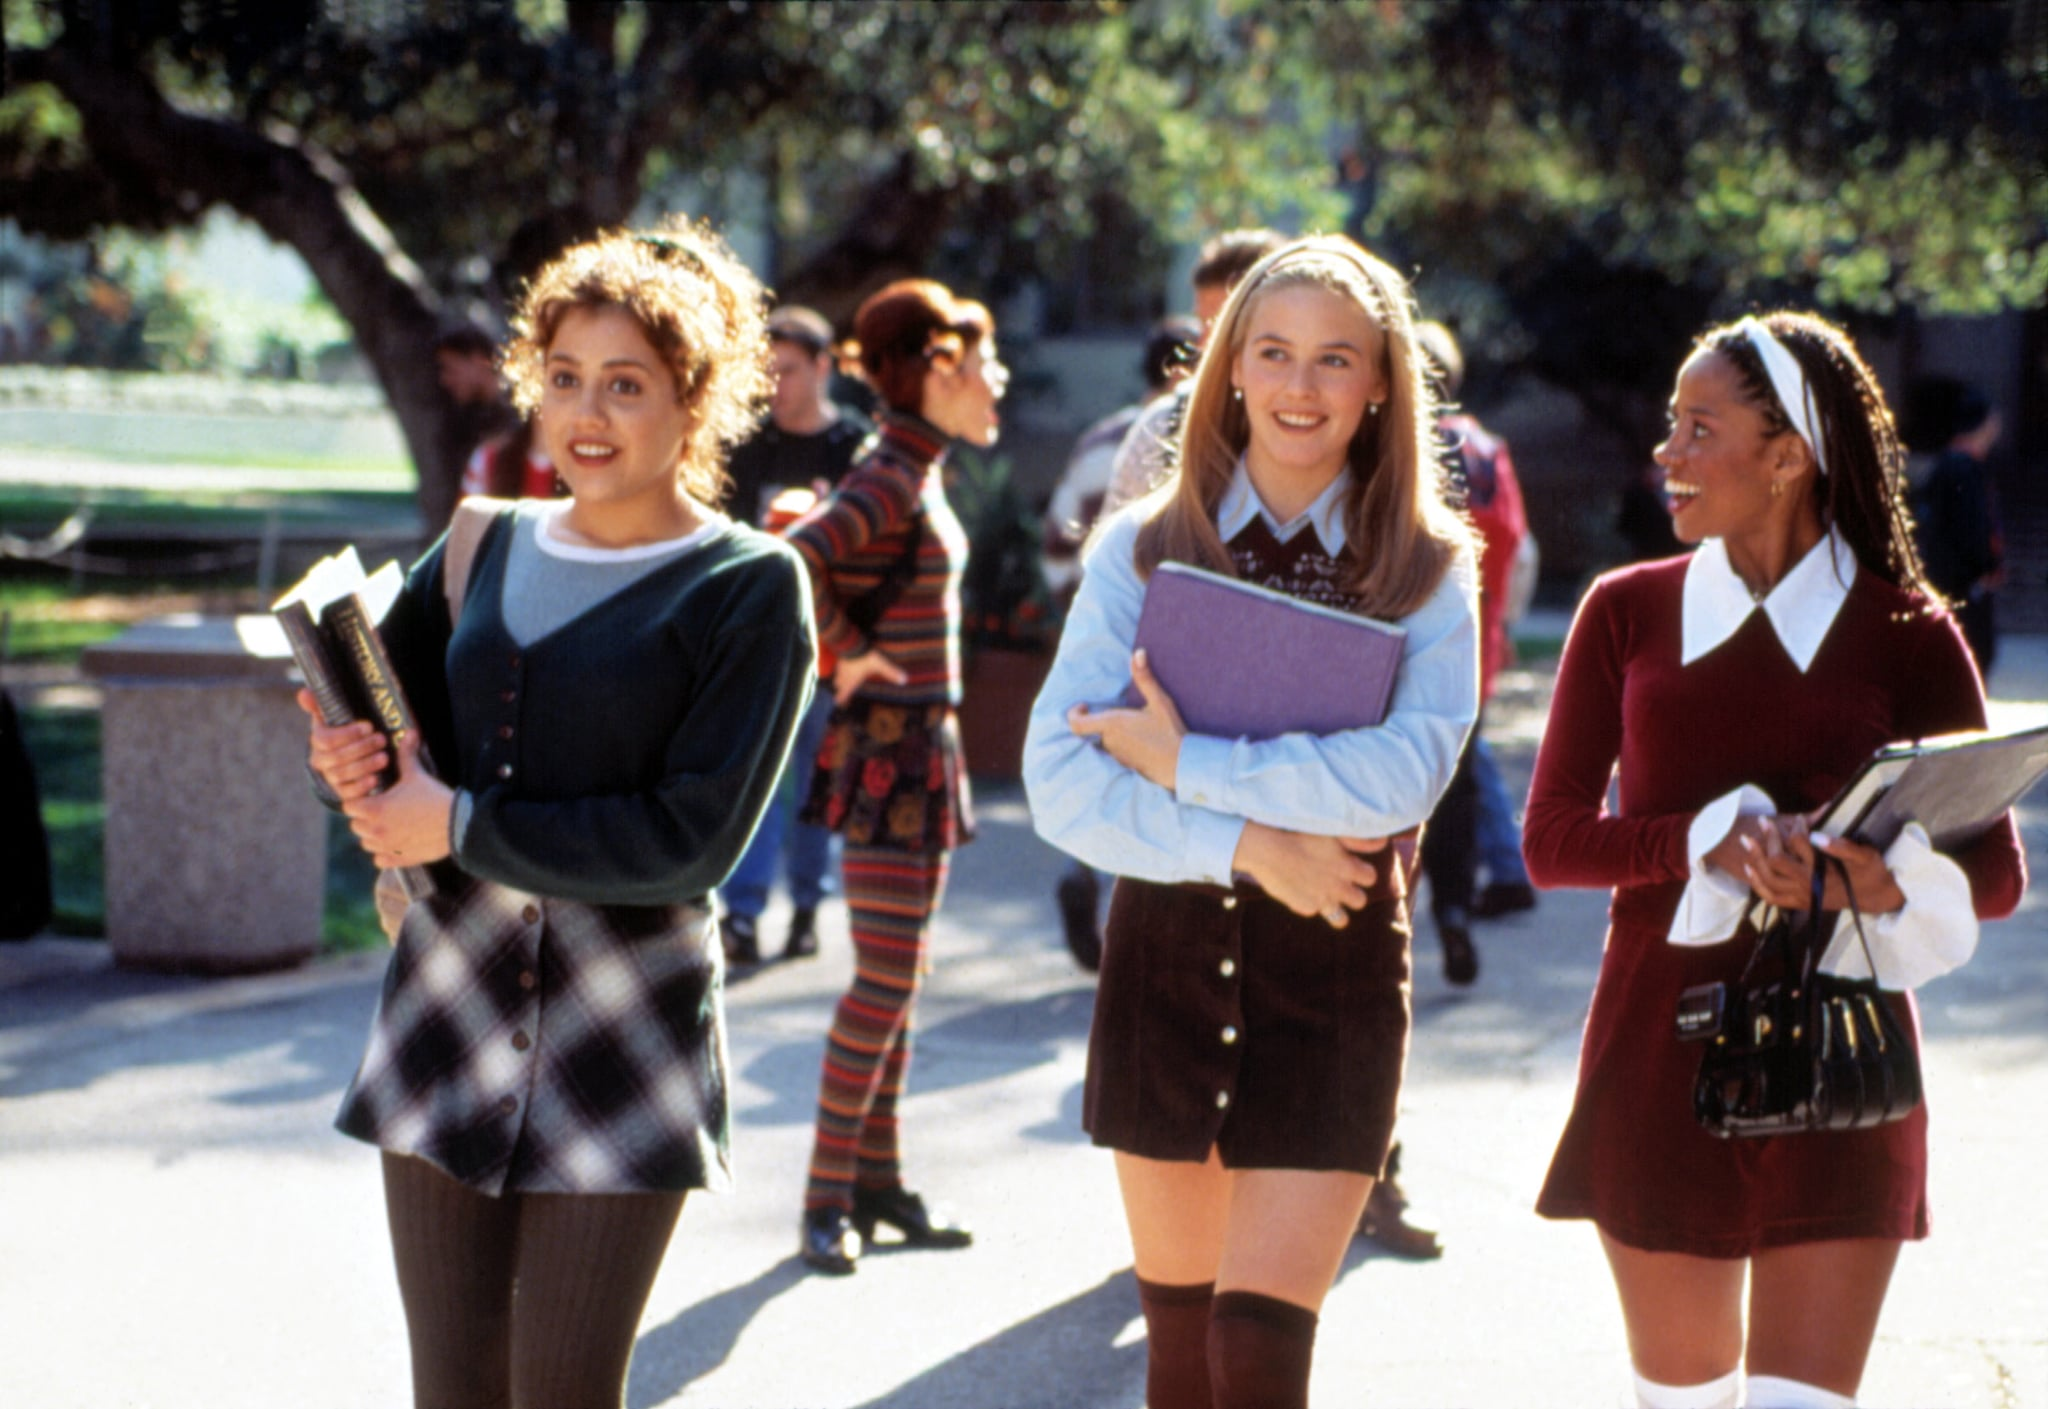 Dionne Tai And Cher From Clueless Over 80 Fabulous Pop Culture Halloween Costume Ideas For Groups Popsugar Entertainment Photo 28